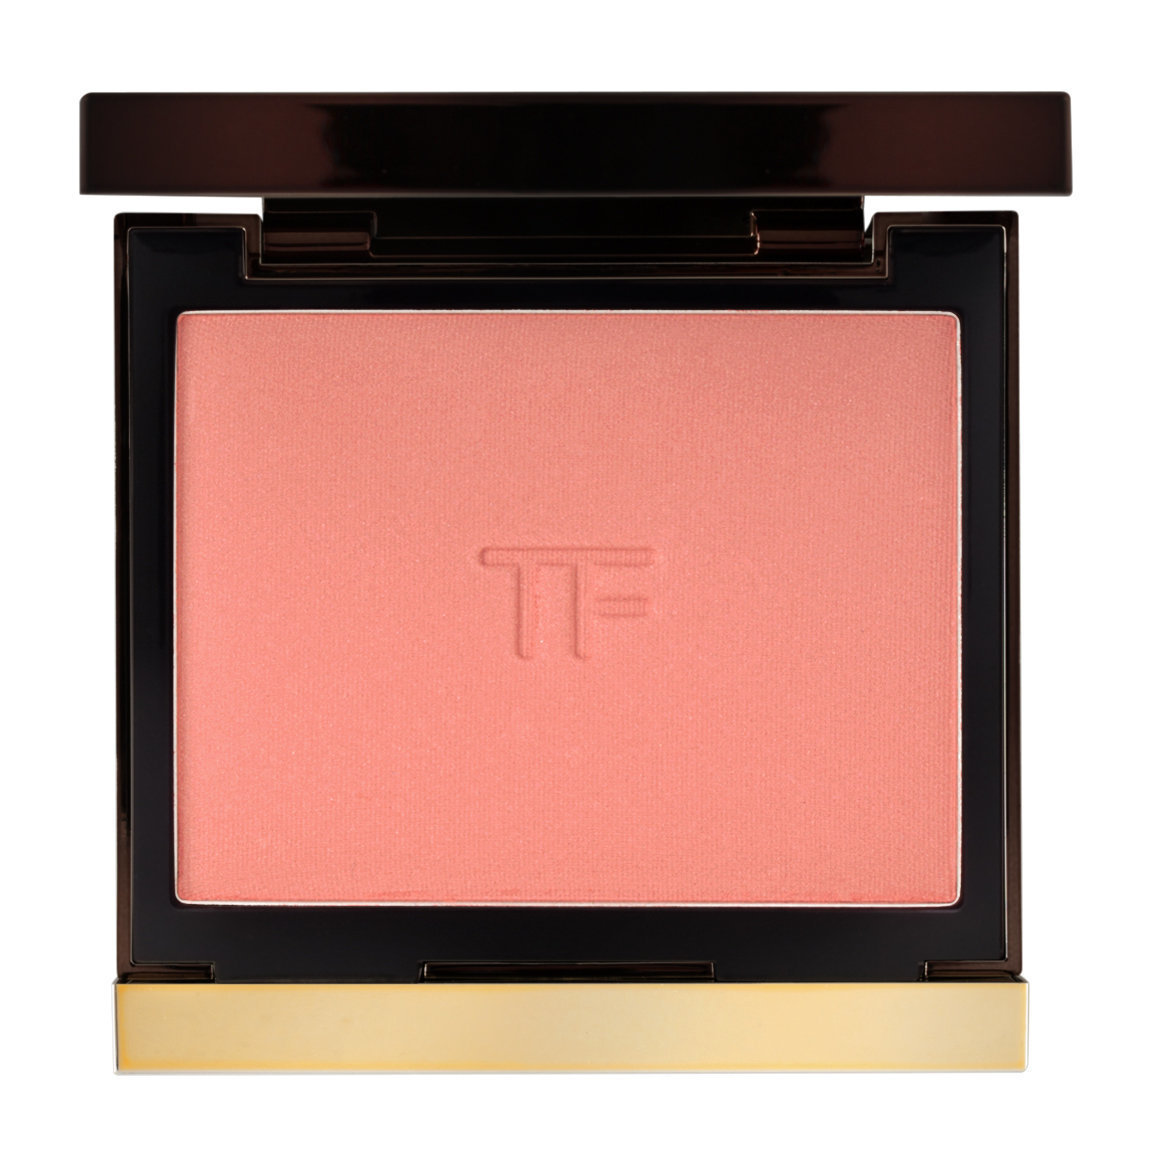 TOM FORD Cheek Color Inhibition product smear.